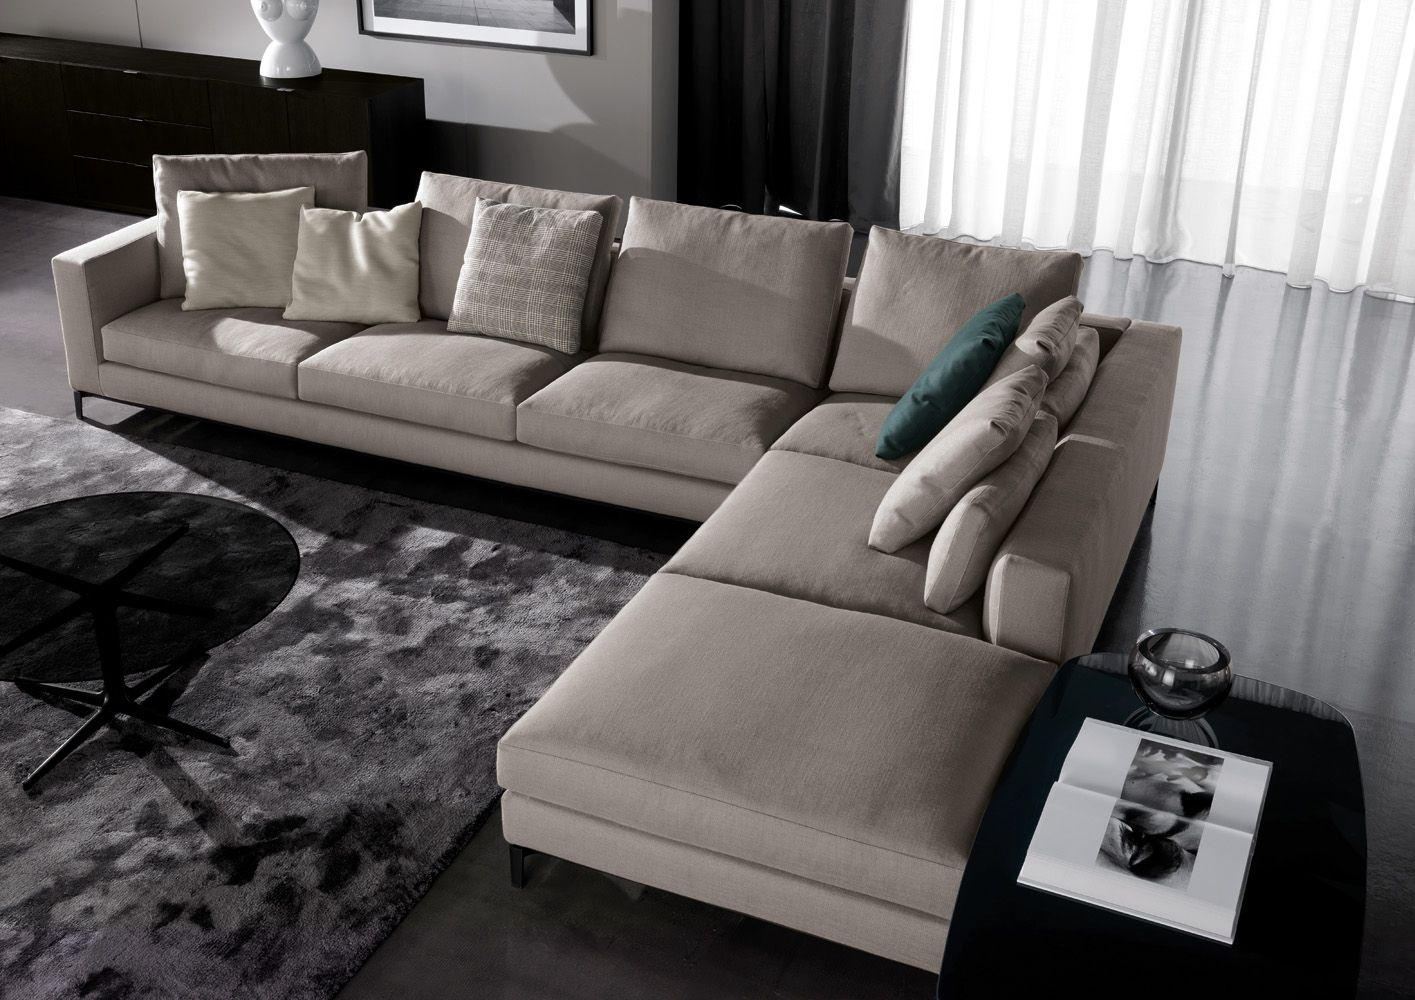 Sofa Setup Ideas Great L Shape Sofa Setup From The Andersen Collection Of